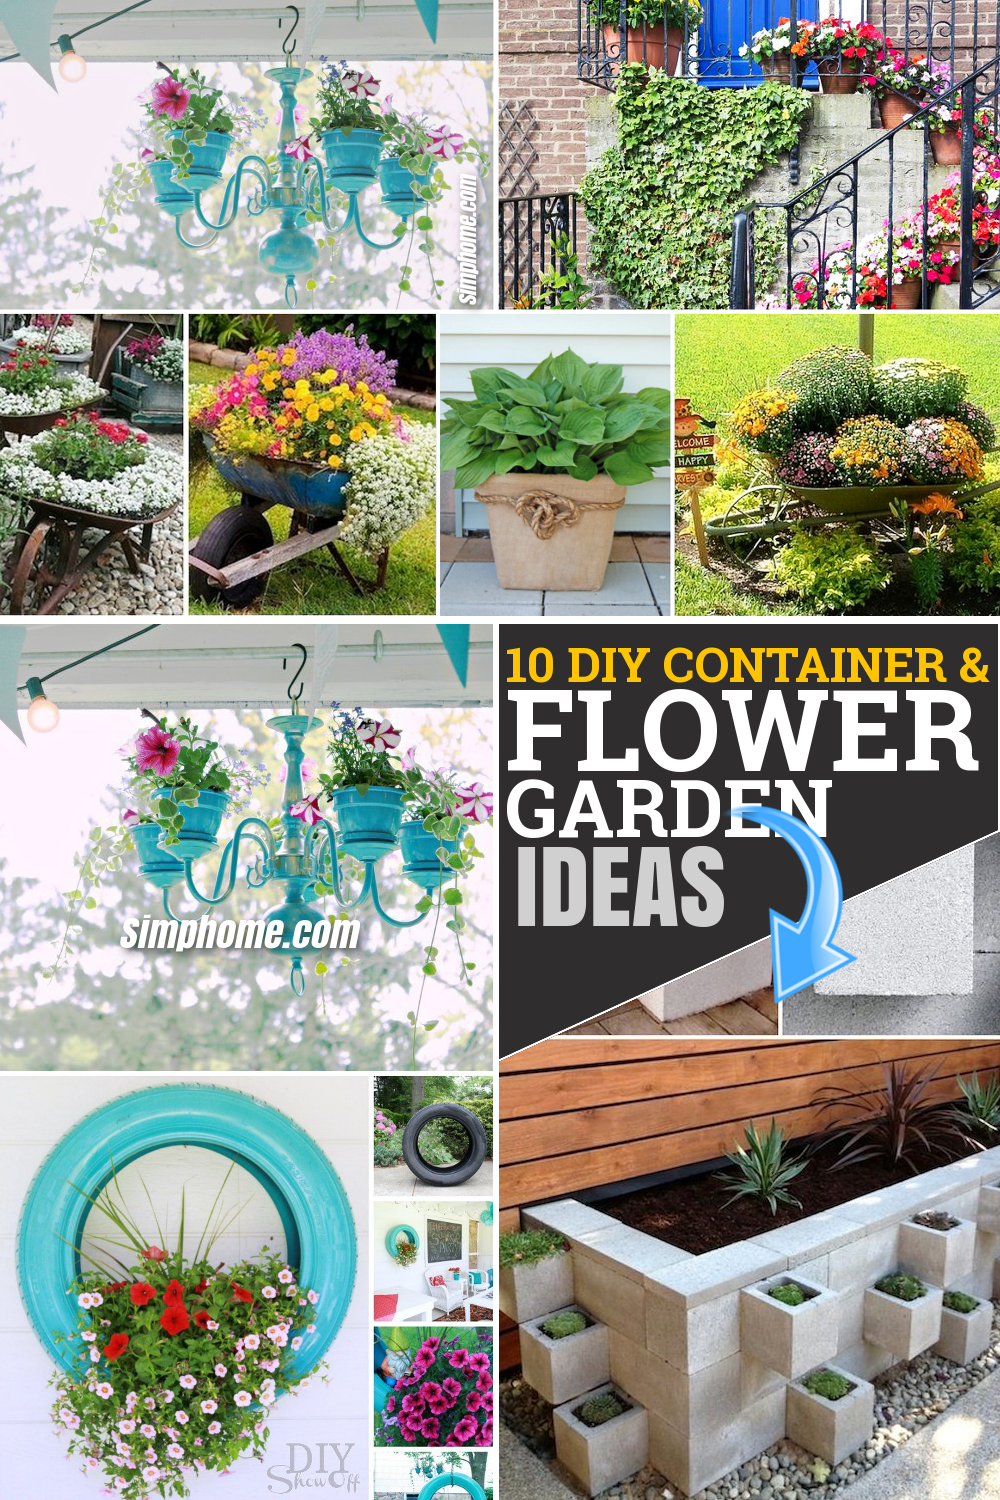 10 DIY flower garden ideas and containers via Simphome.com Featured pinterest image